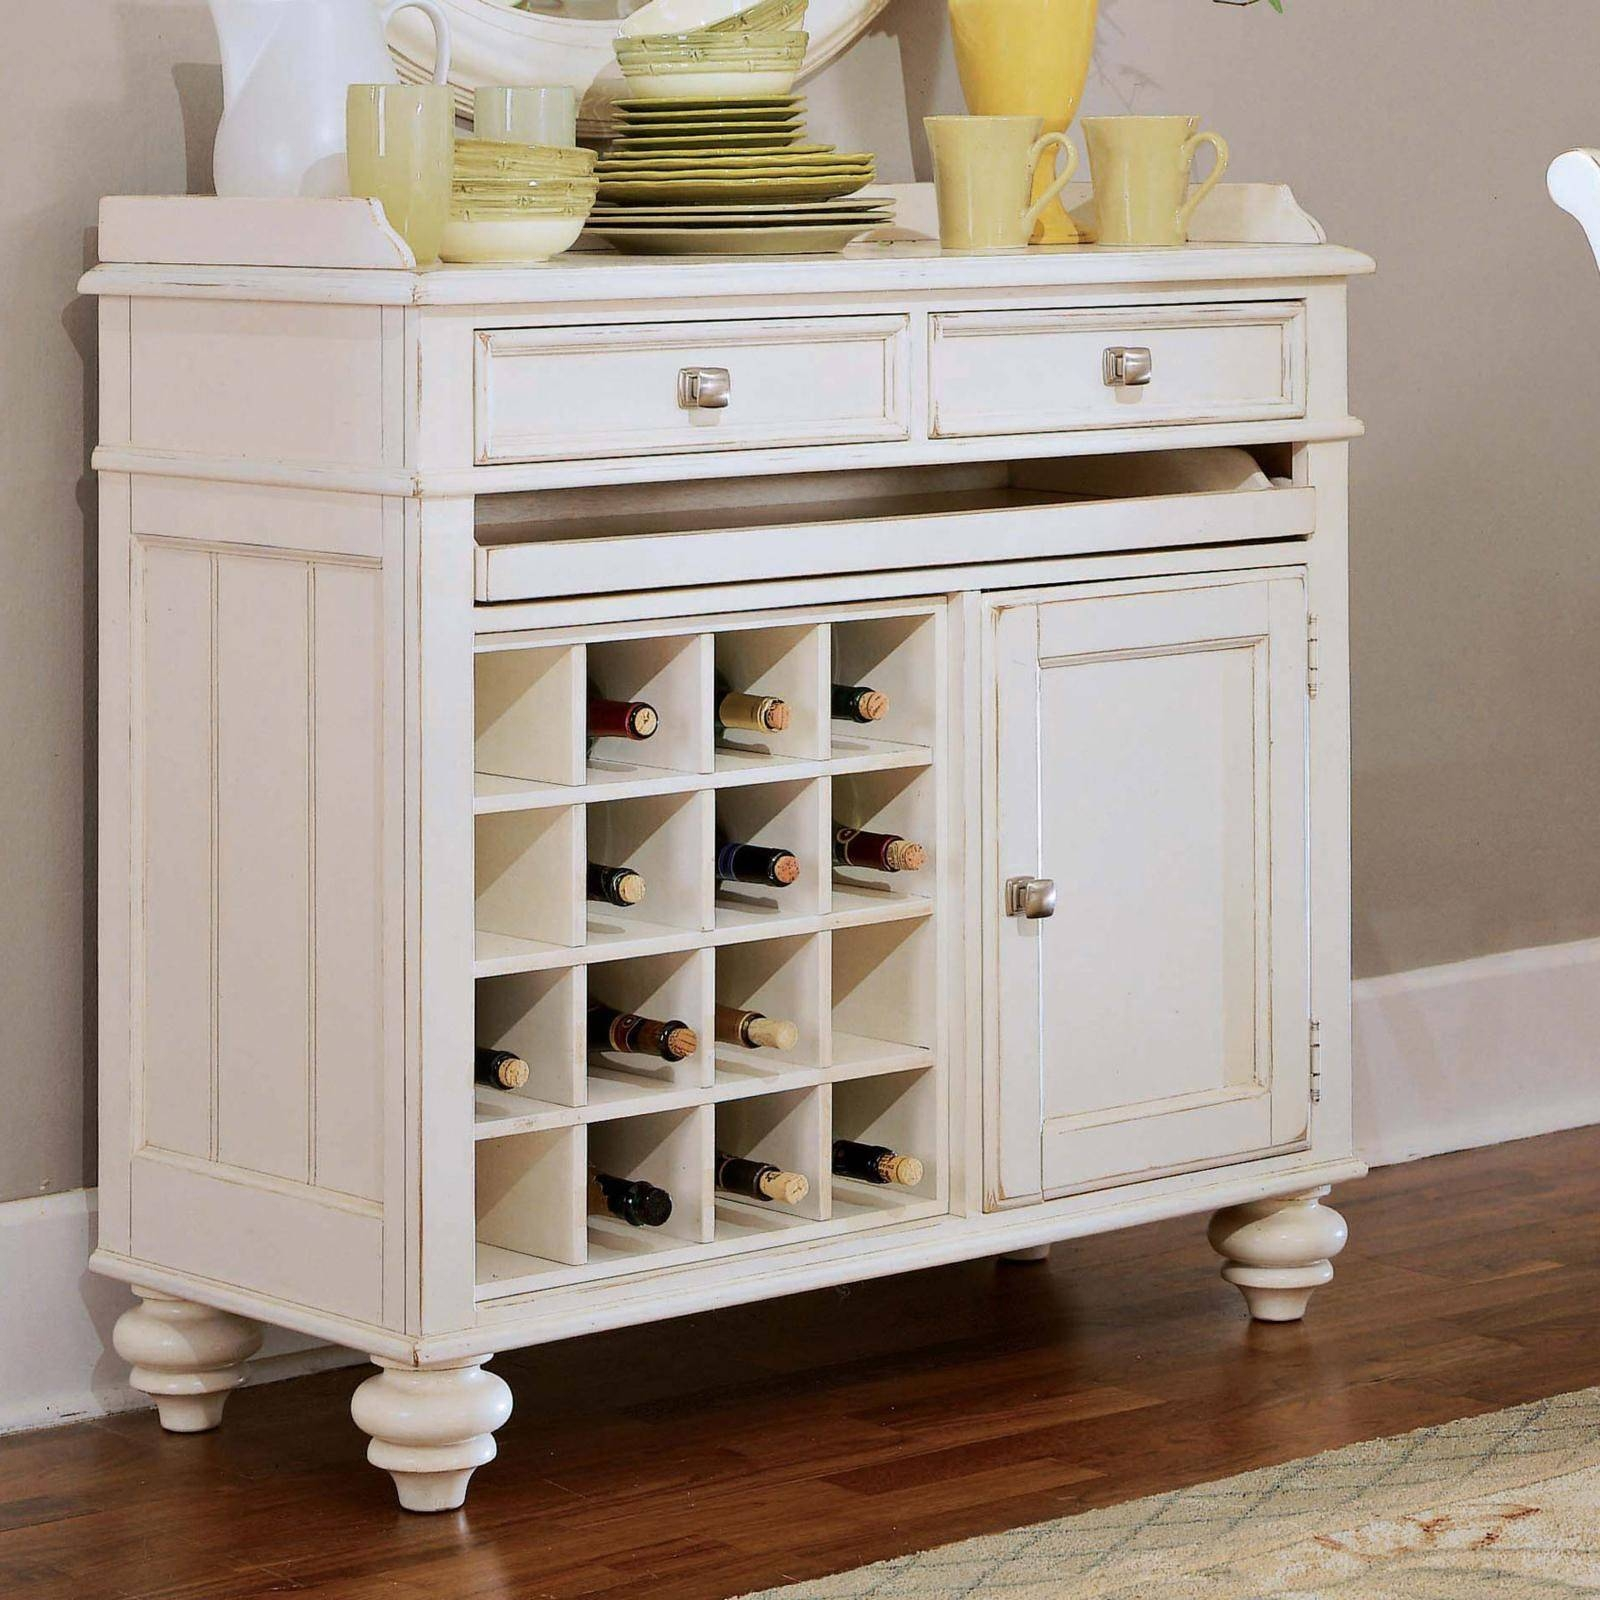 Cayden 16 Bottle Wine Rack And Server | Hayneedle Within White Sideboard With Wine Rack (View 10 of 20)